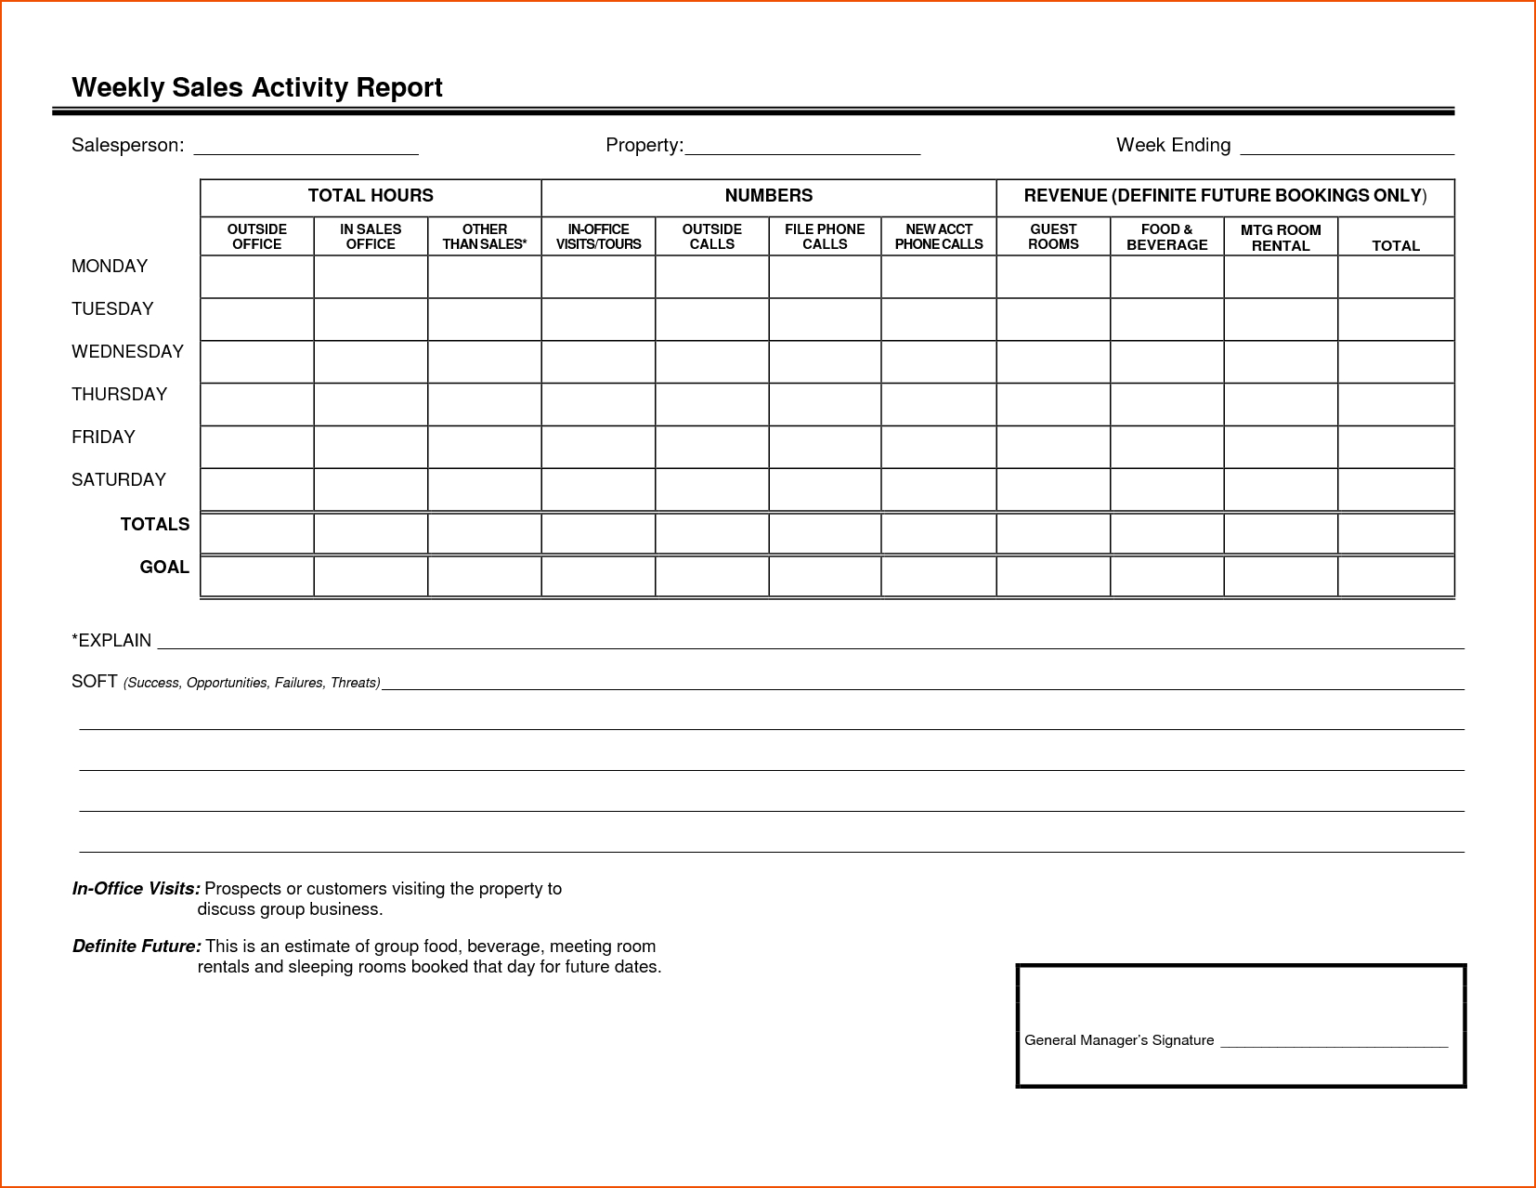 Sales Reporting Templates And Monthly Sales Activity Report For Sales Manager Monthly Report Tem In 2020 Sales Report Template Progress Report Template Report Template